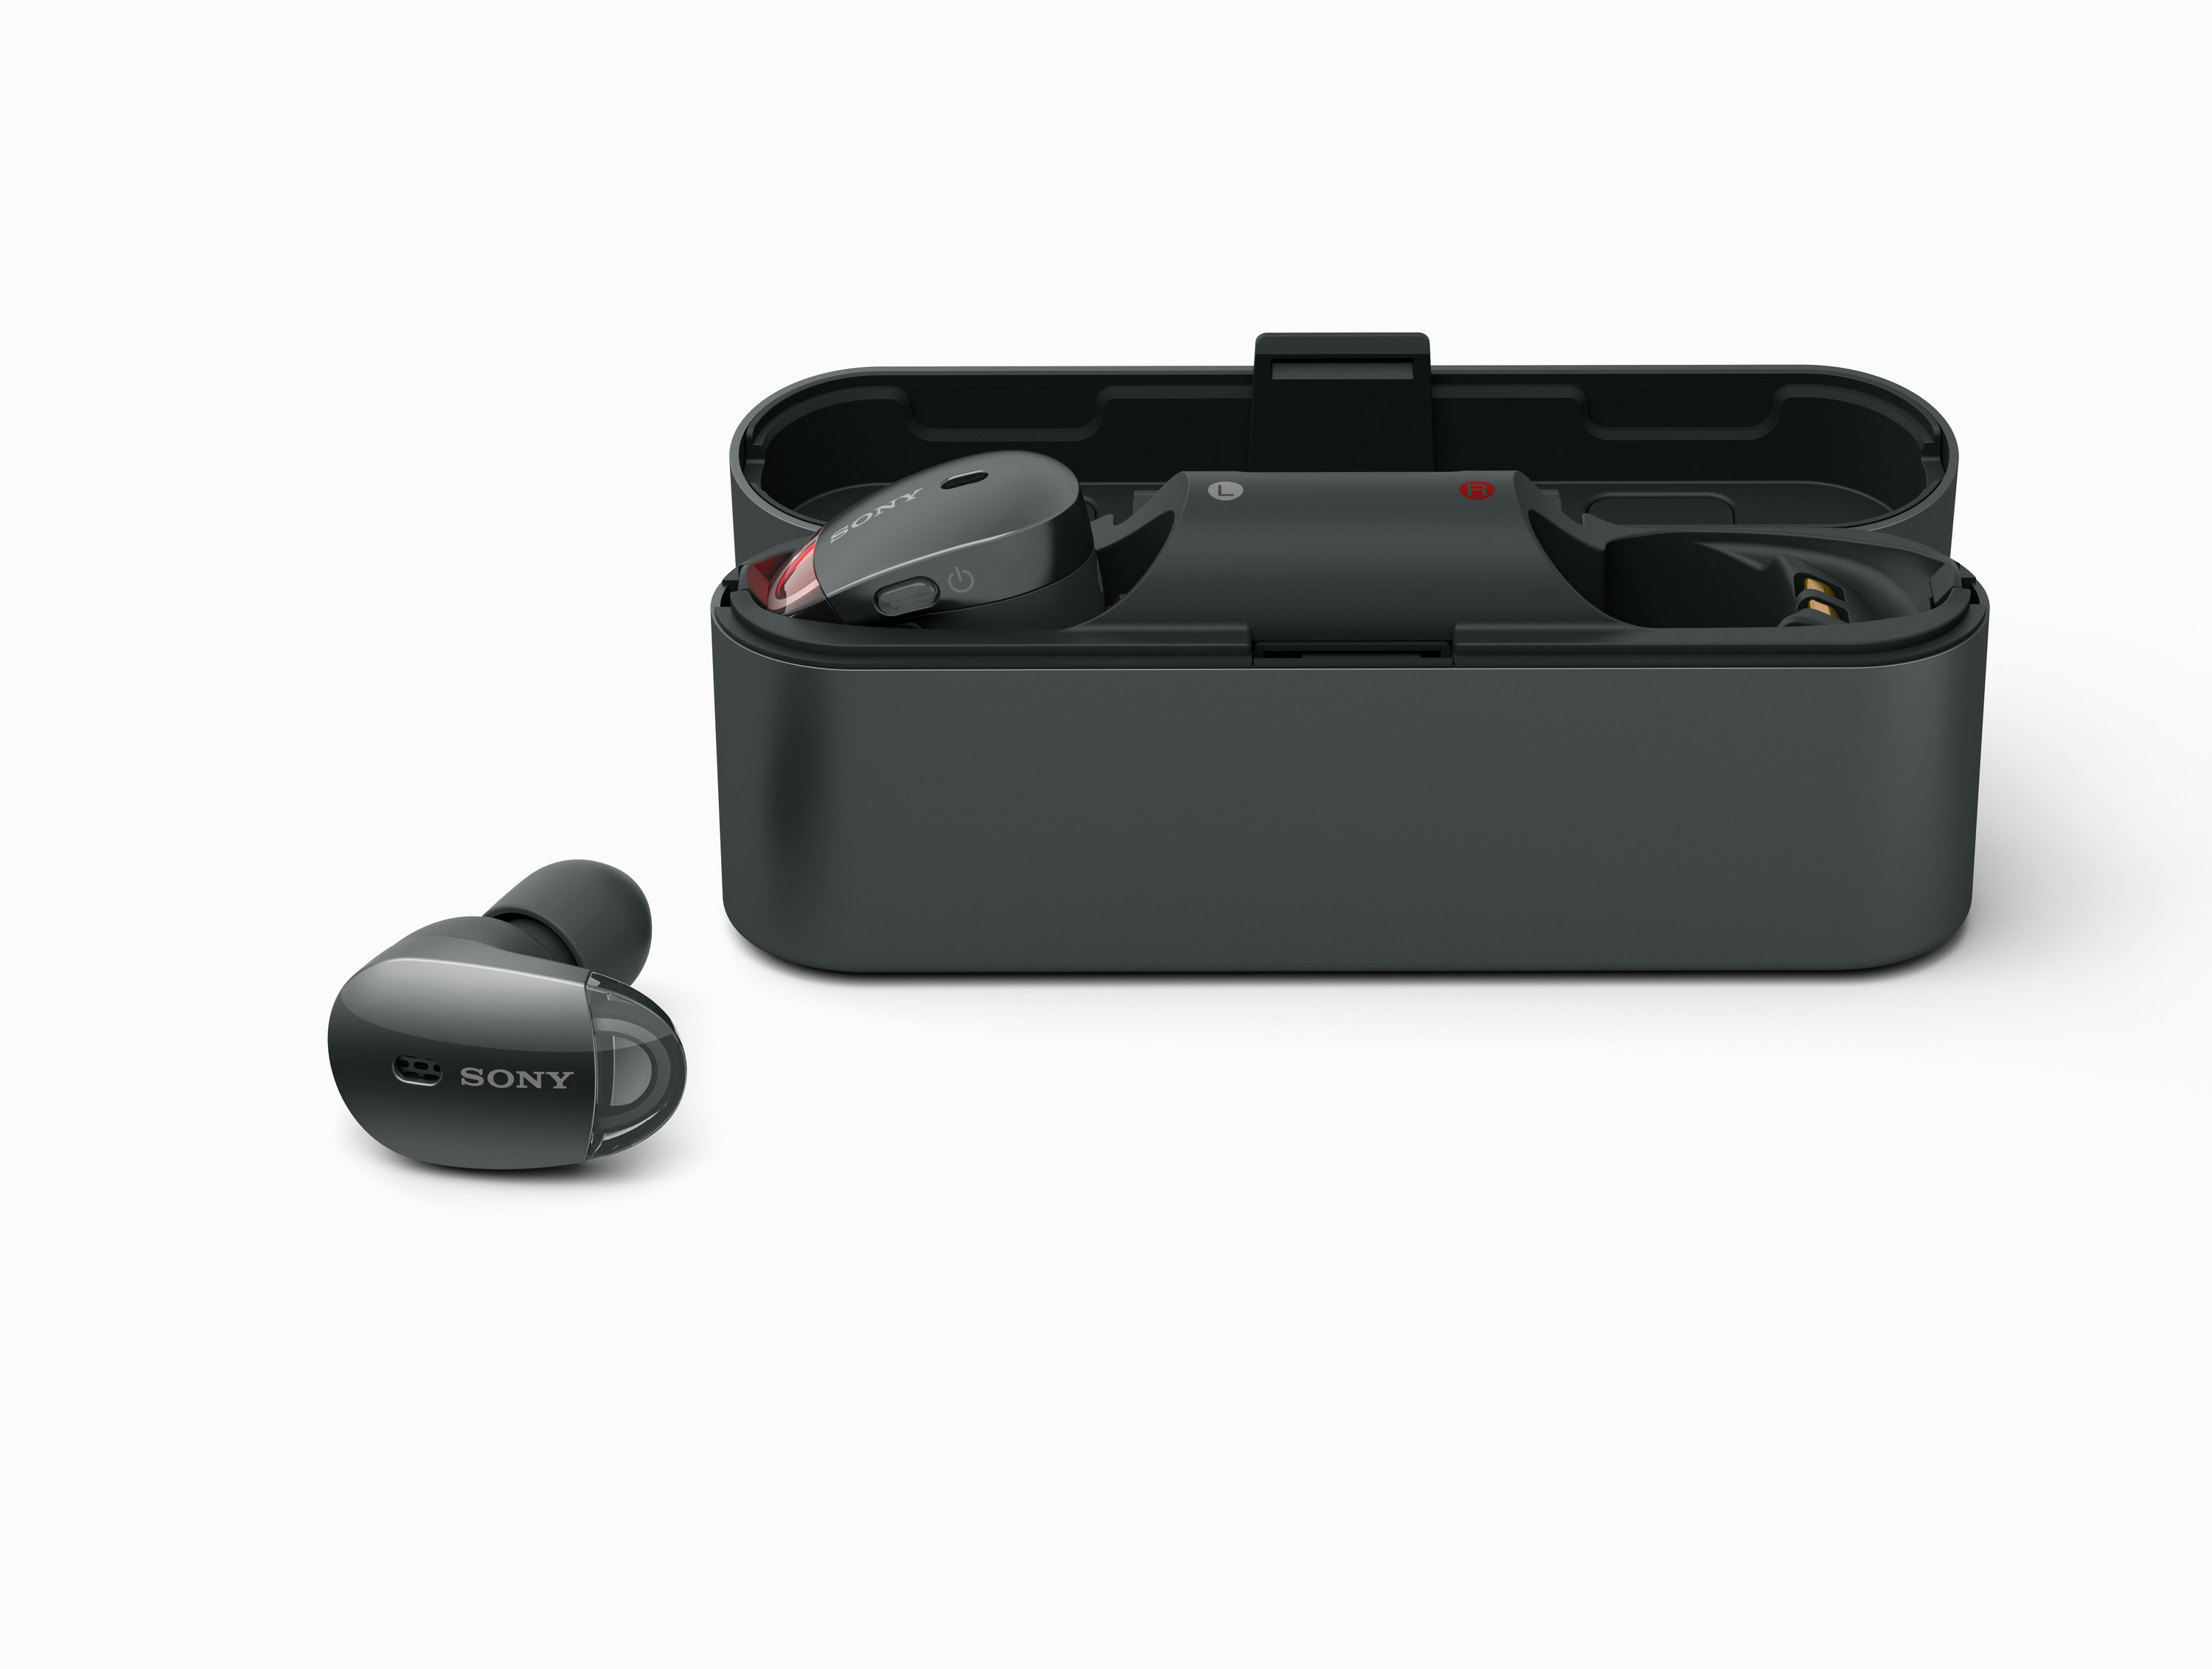 Sony-WF-1000X-Bluetooth-Wireless-Noise-Canceling-In-Ear-Earphones-w-Mic-and-NFC